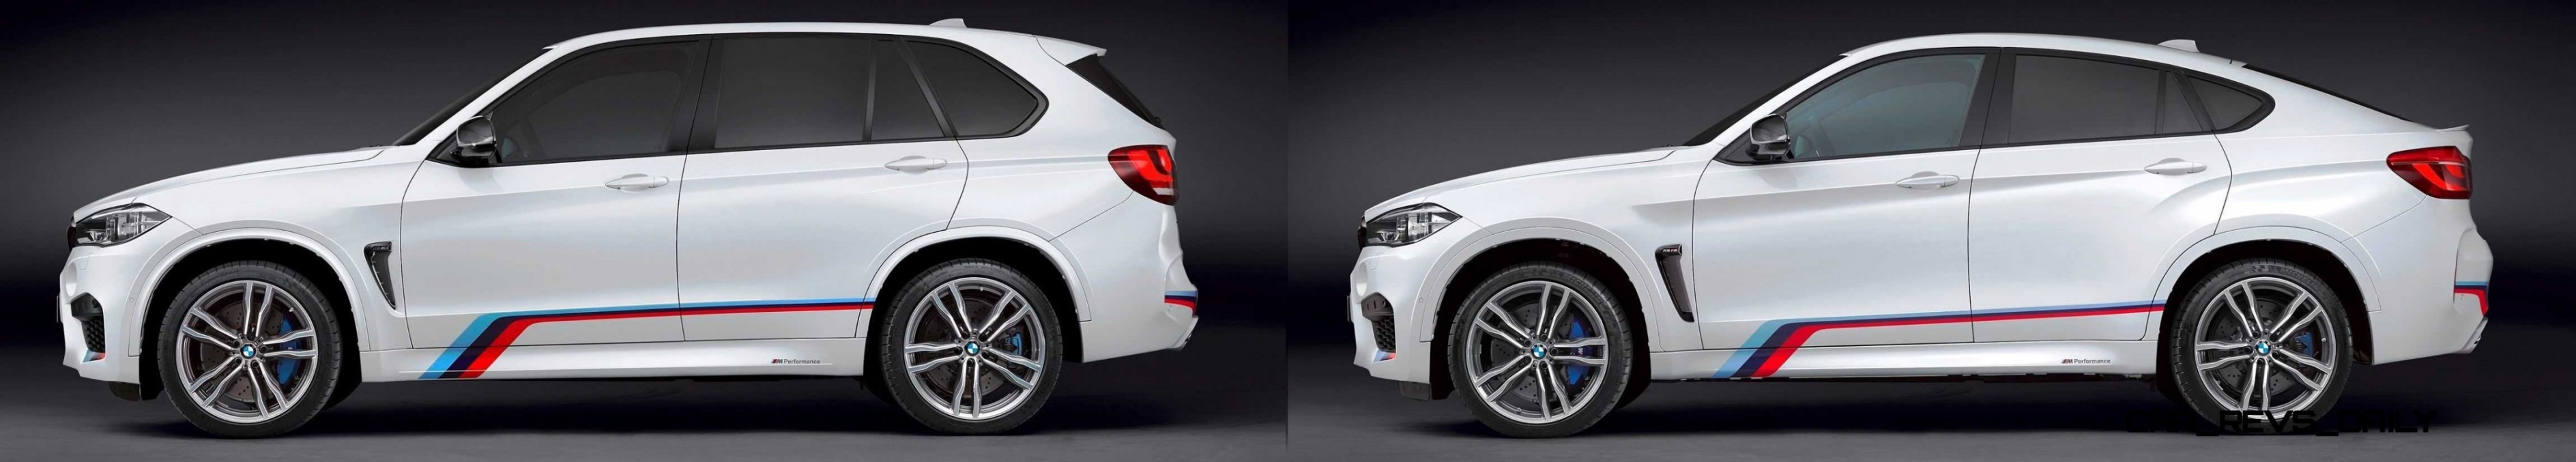 8c914657803 BMW M Performance Parts for the BMW X5 M and the BMW X6 M.